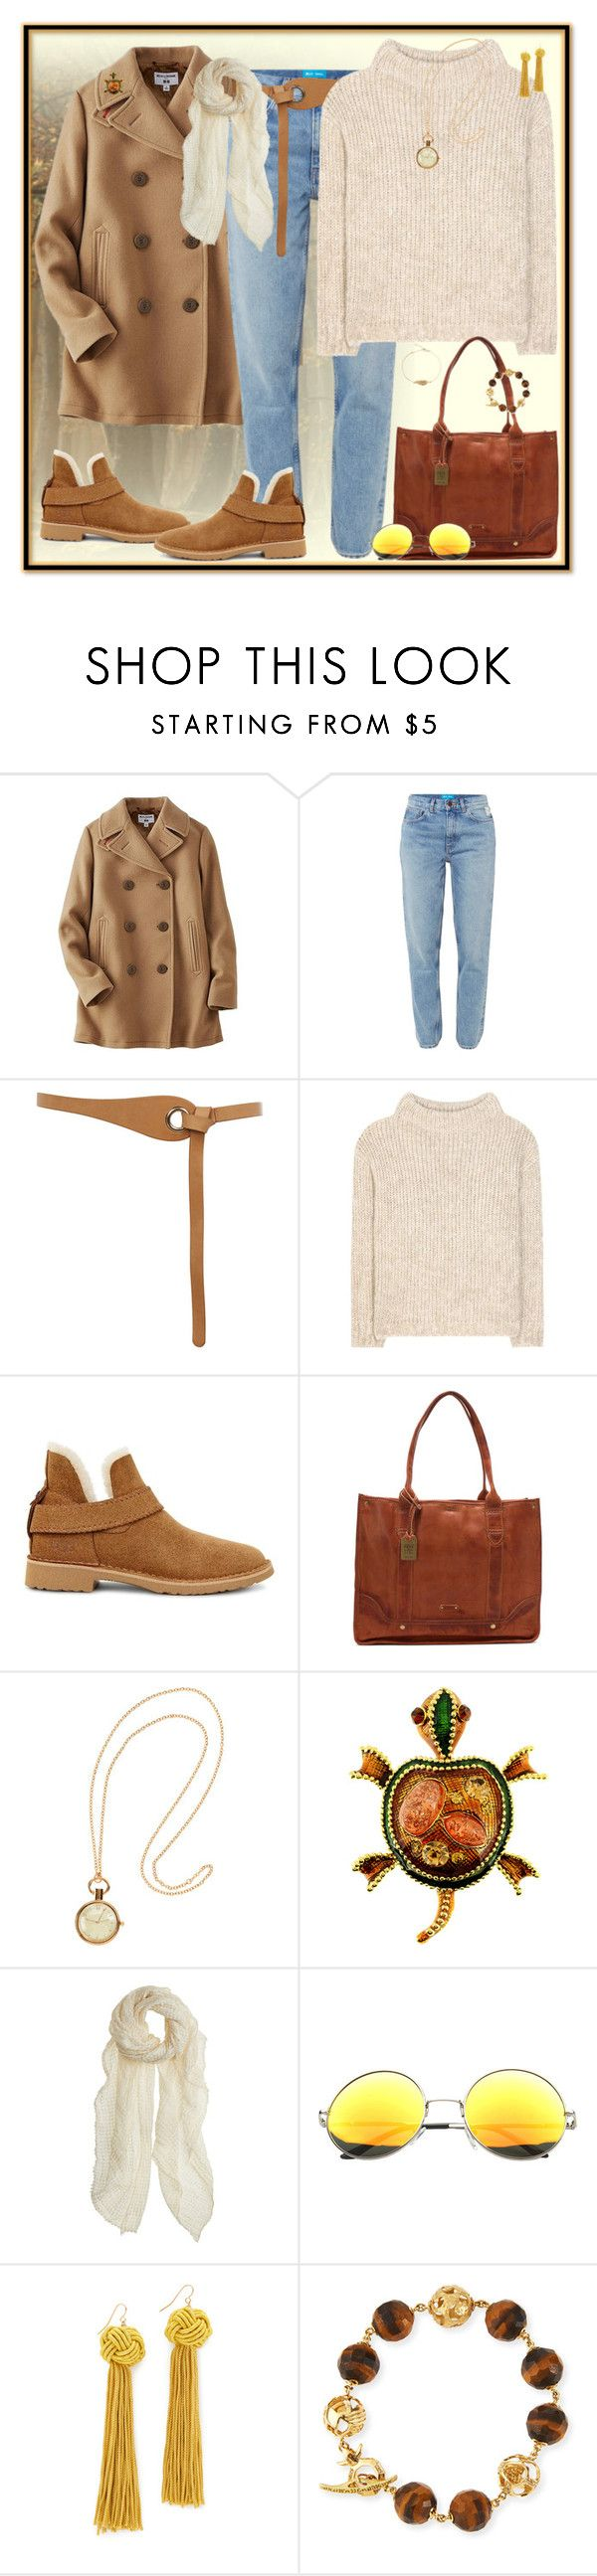 """""""Go For A Walk"""" by winscotthk ❤ liked on Polyvore featuring Uniqlo, M.i.h Jeans, Warehouse, Tom Ford, UGG, Frye, H&M, Faliero Sarti, Vanessa Mooney and Marco Ta Moko"""